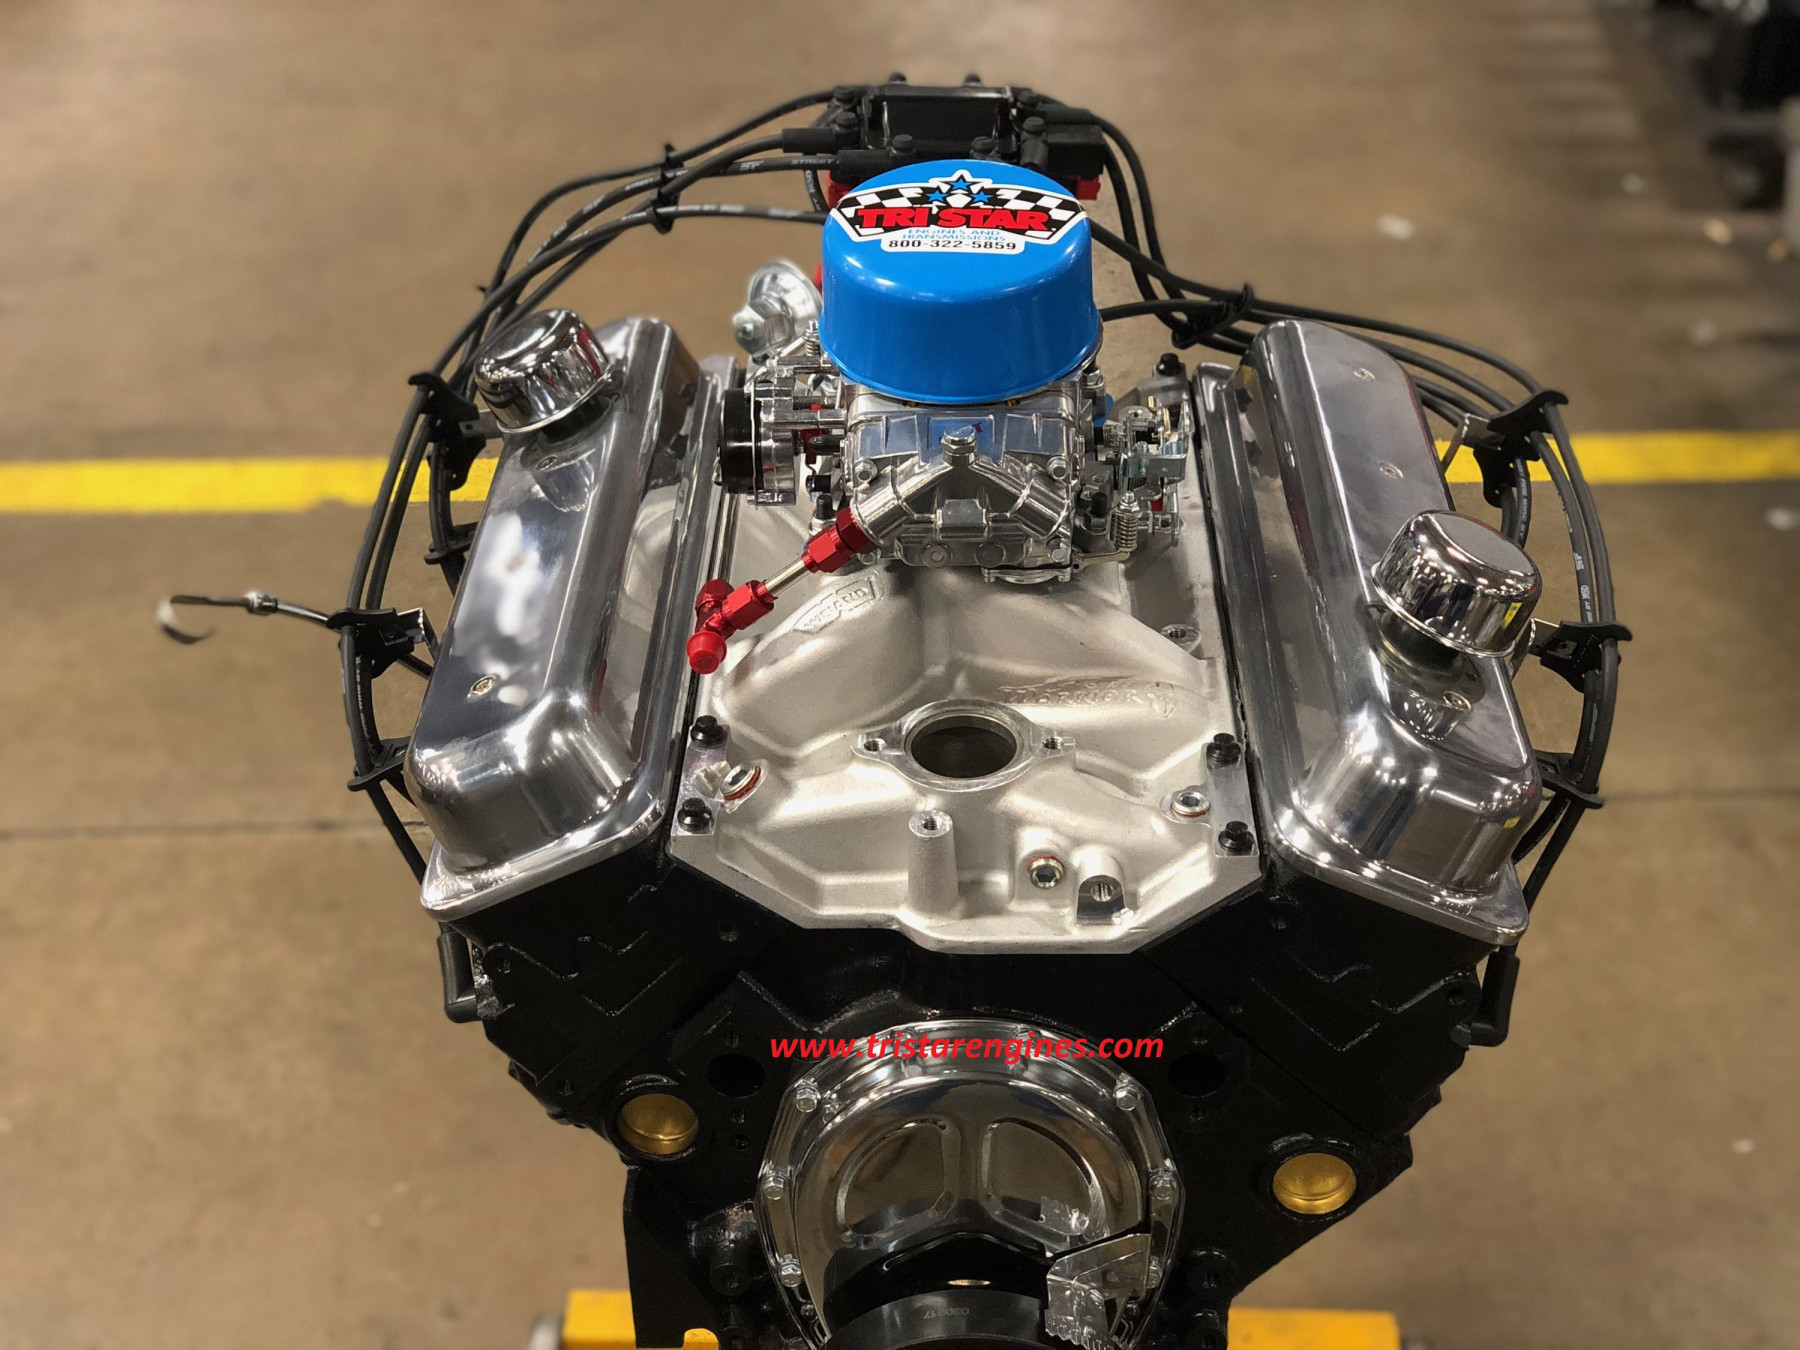 Chevy 383 Crate Engine | 383 Stroker Motor for Sale